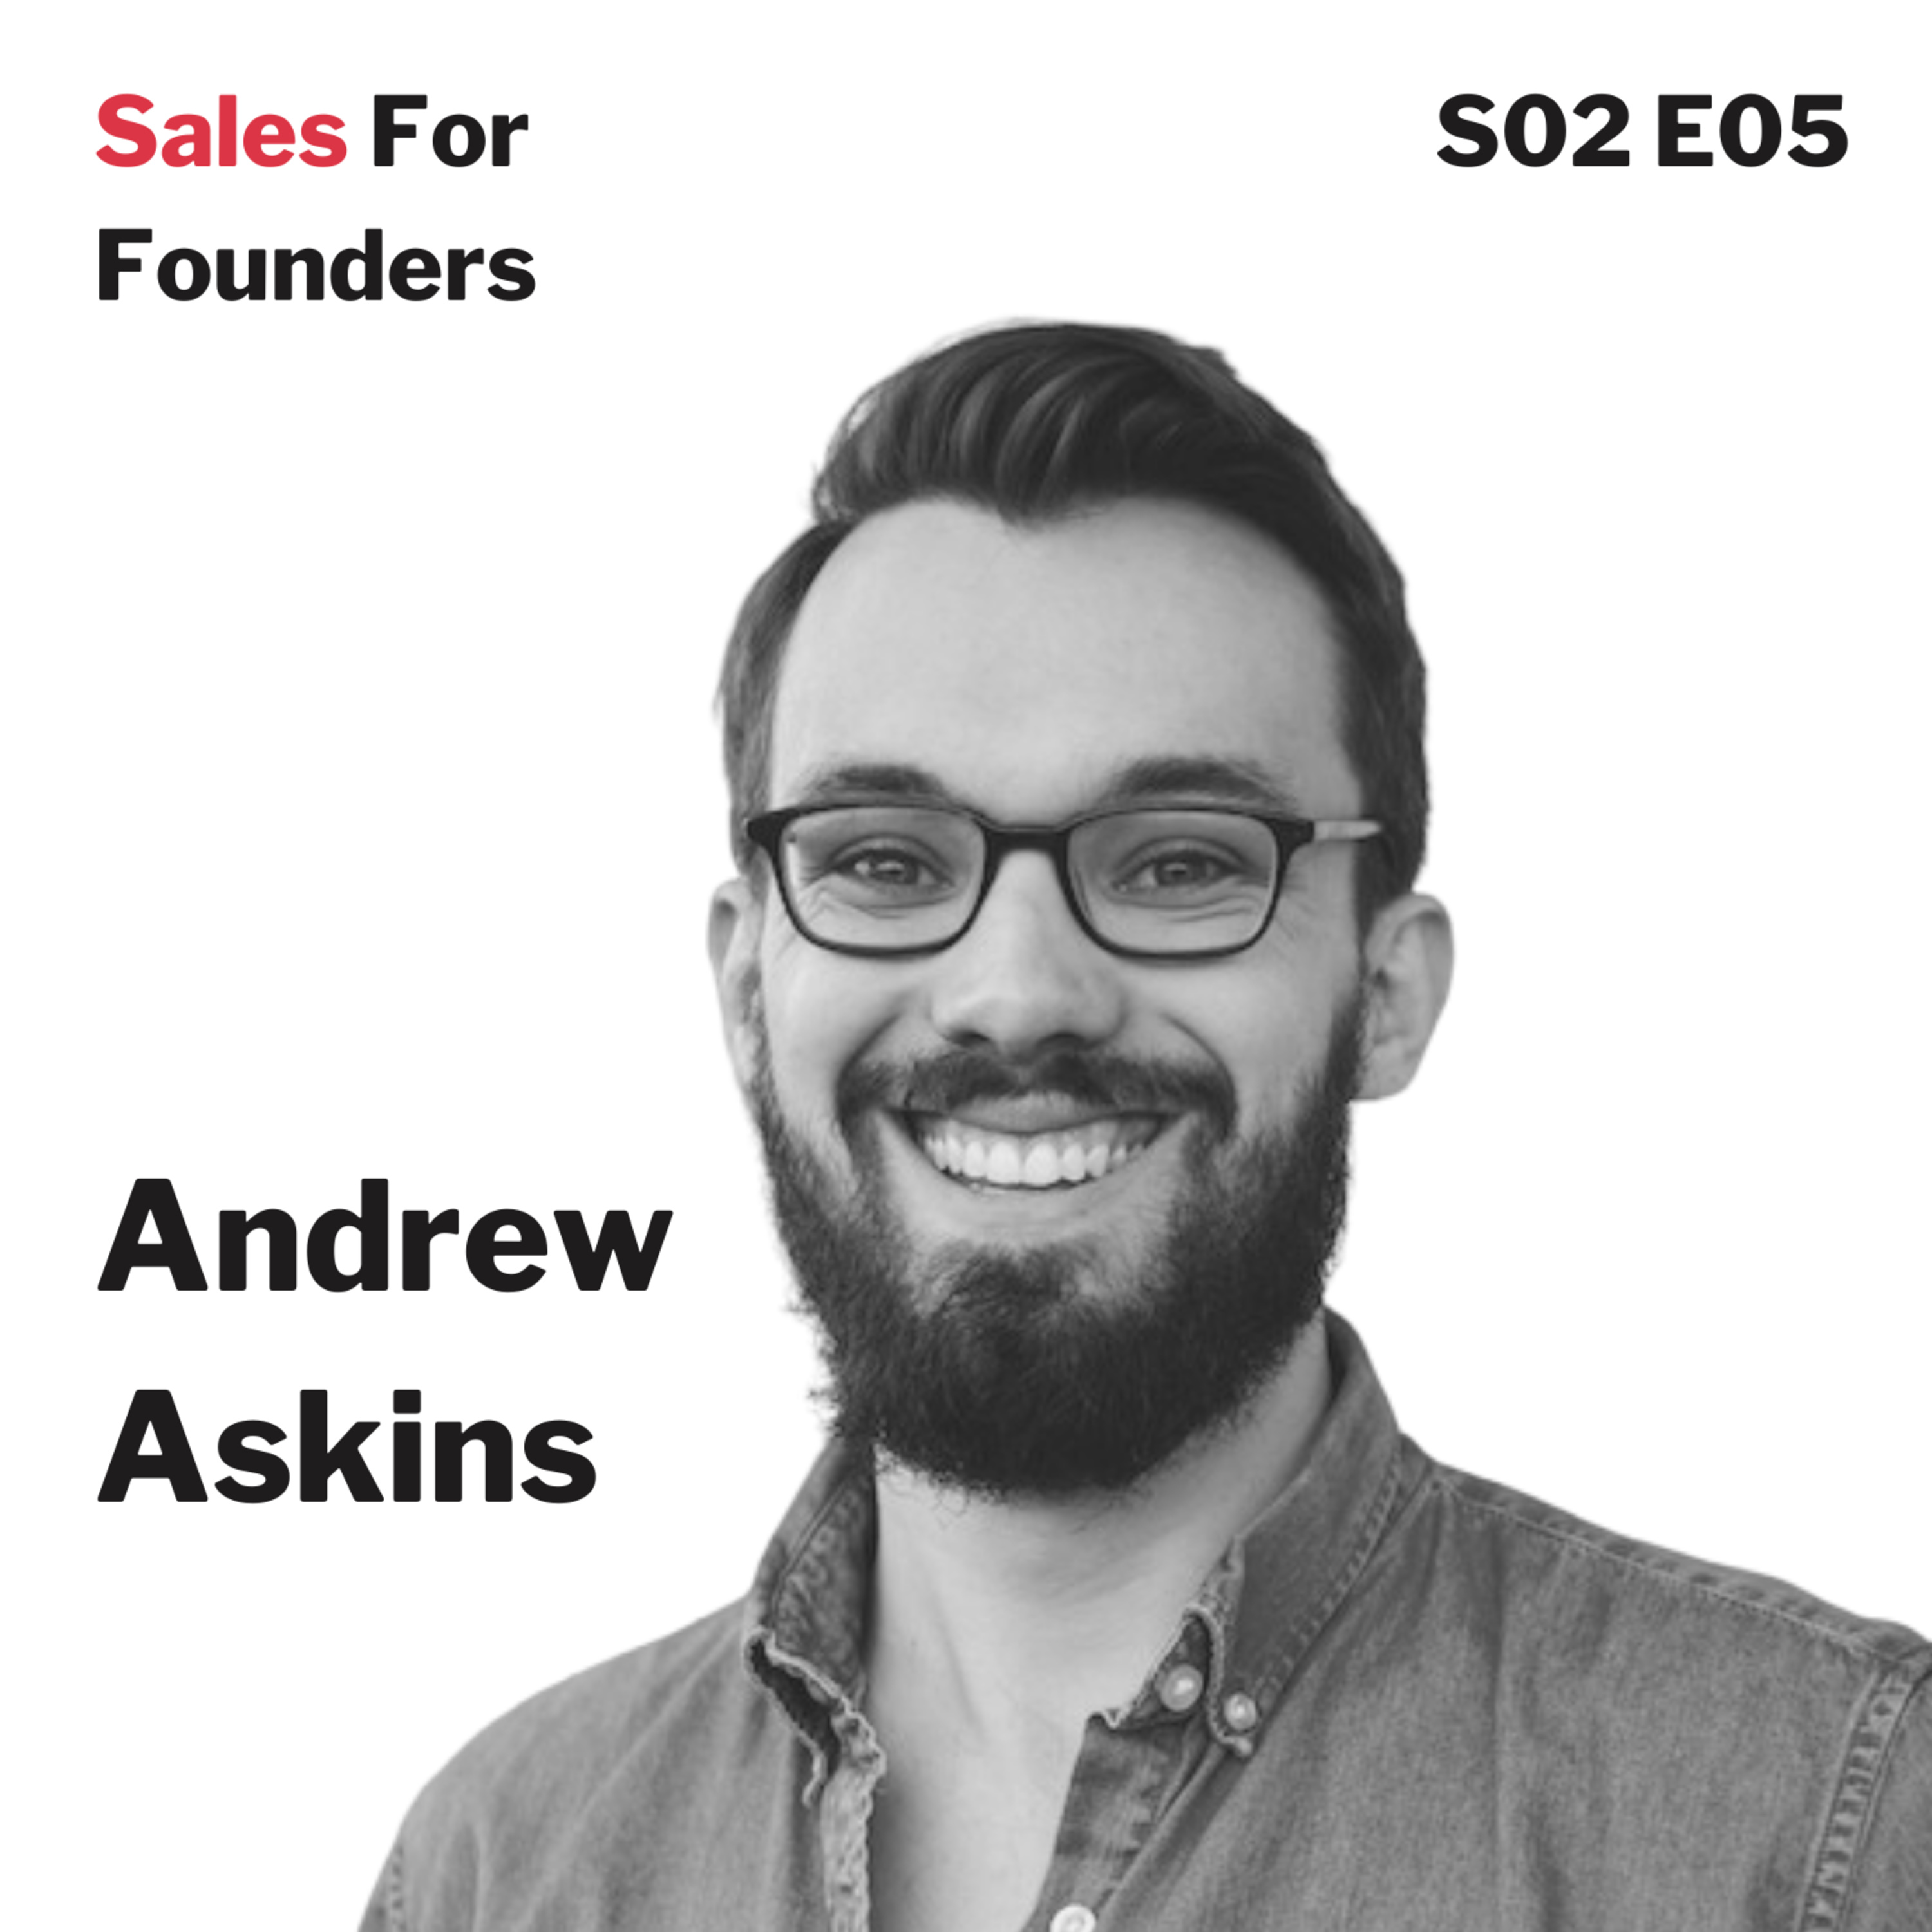 Turning a struggling startup into a $50k/month agency business - with Andrew Askins, cofounder and CEO of Krit.com